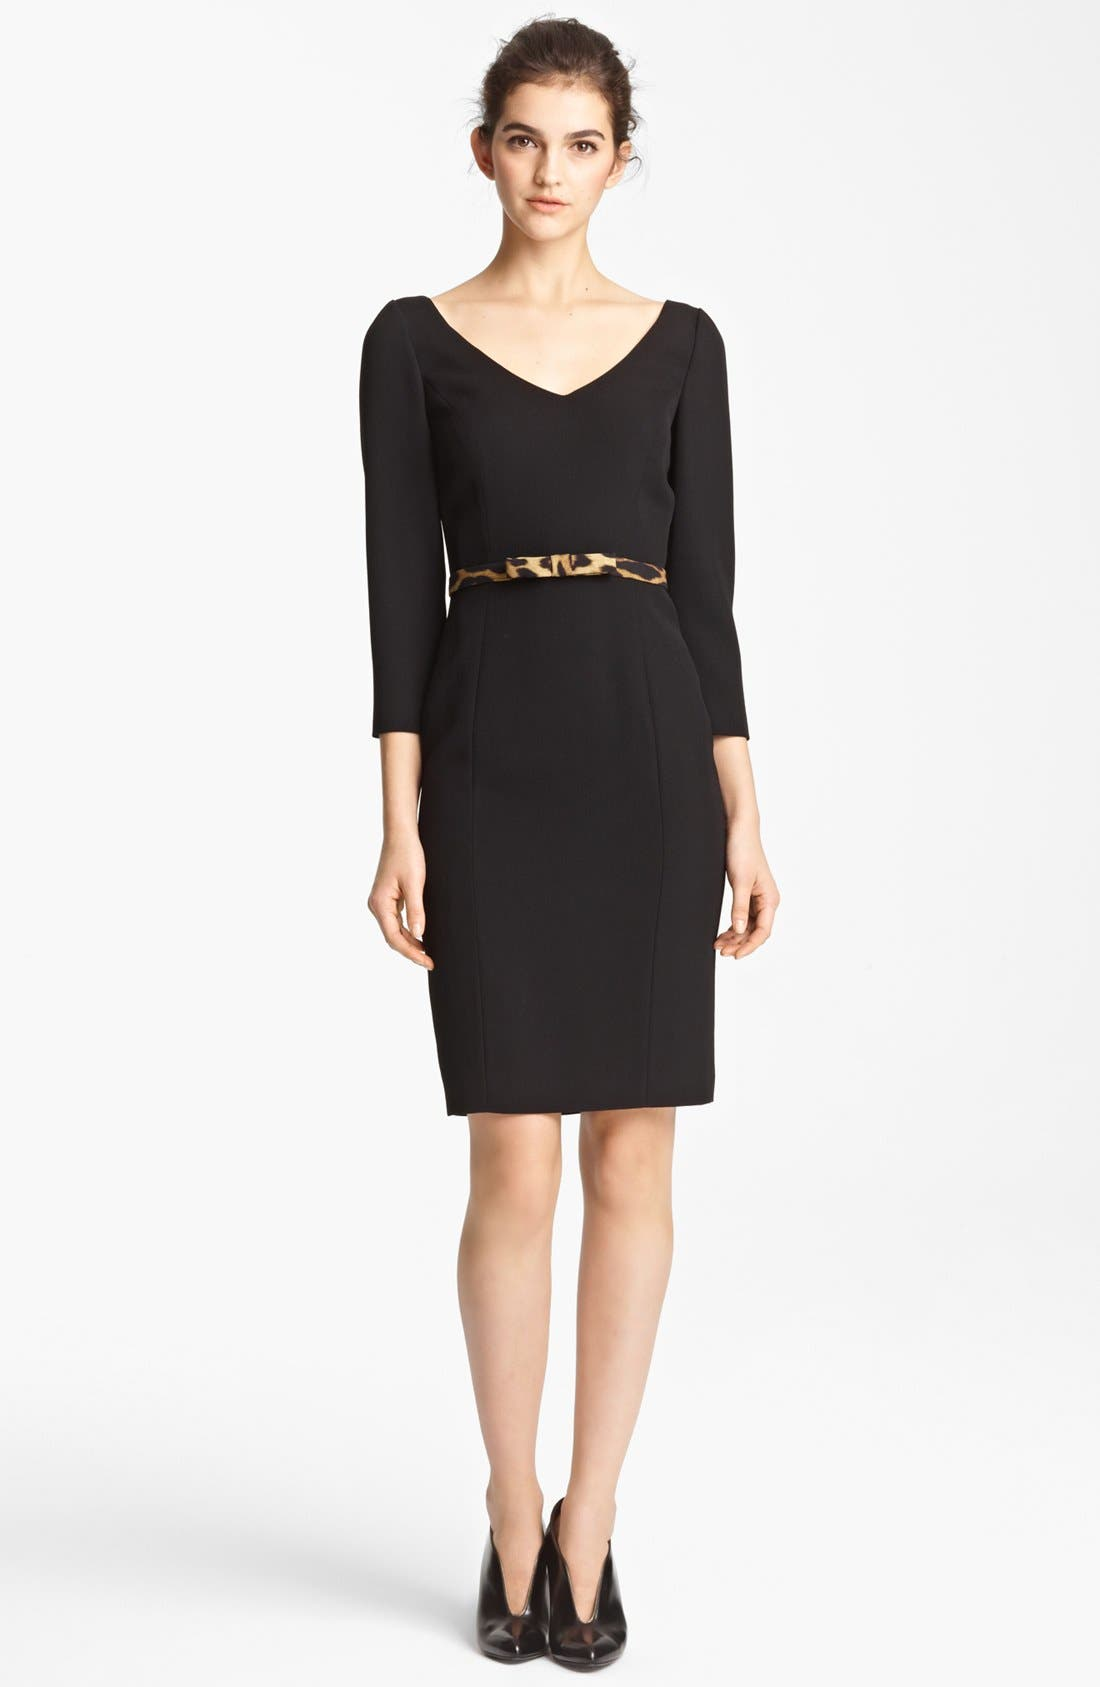 Main Image - Moschino Cheap & Chic Belted Dress